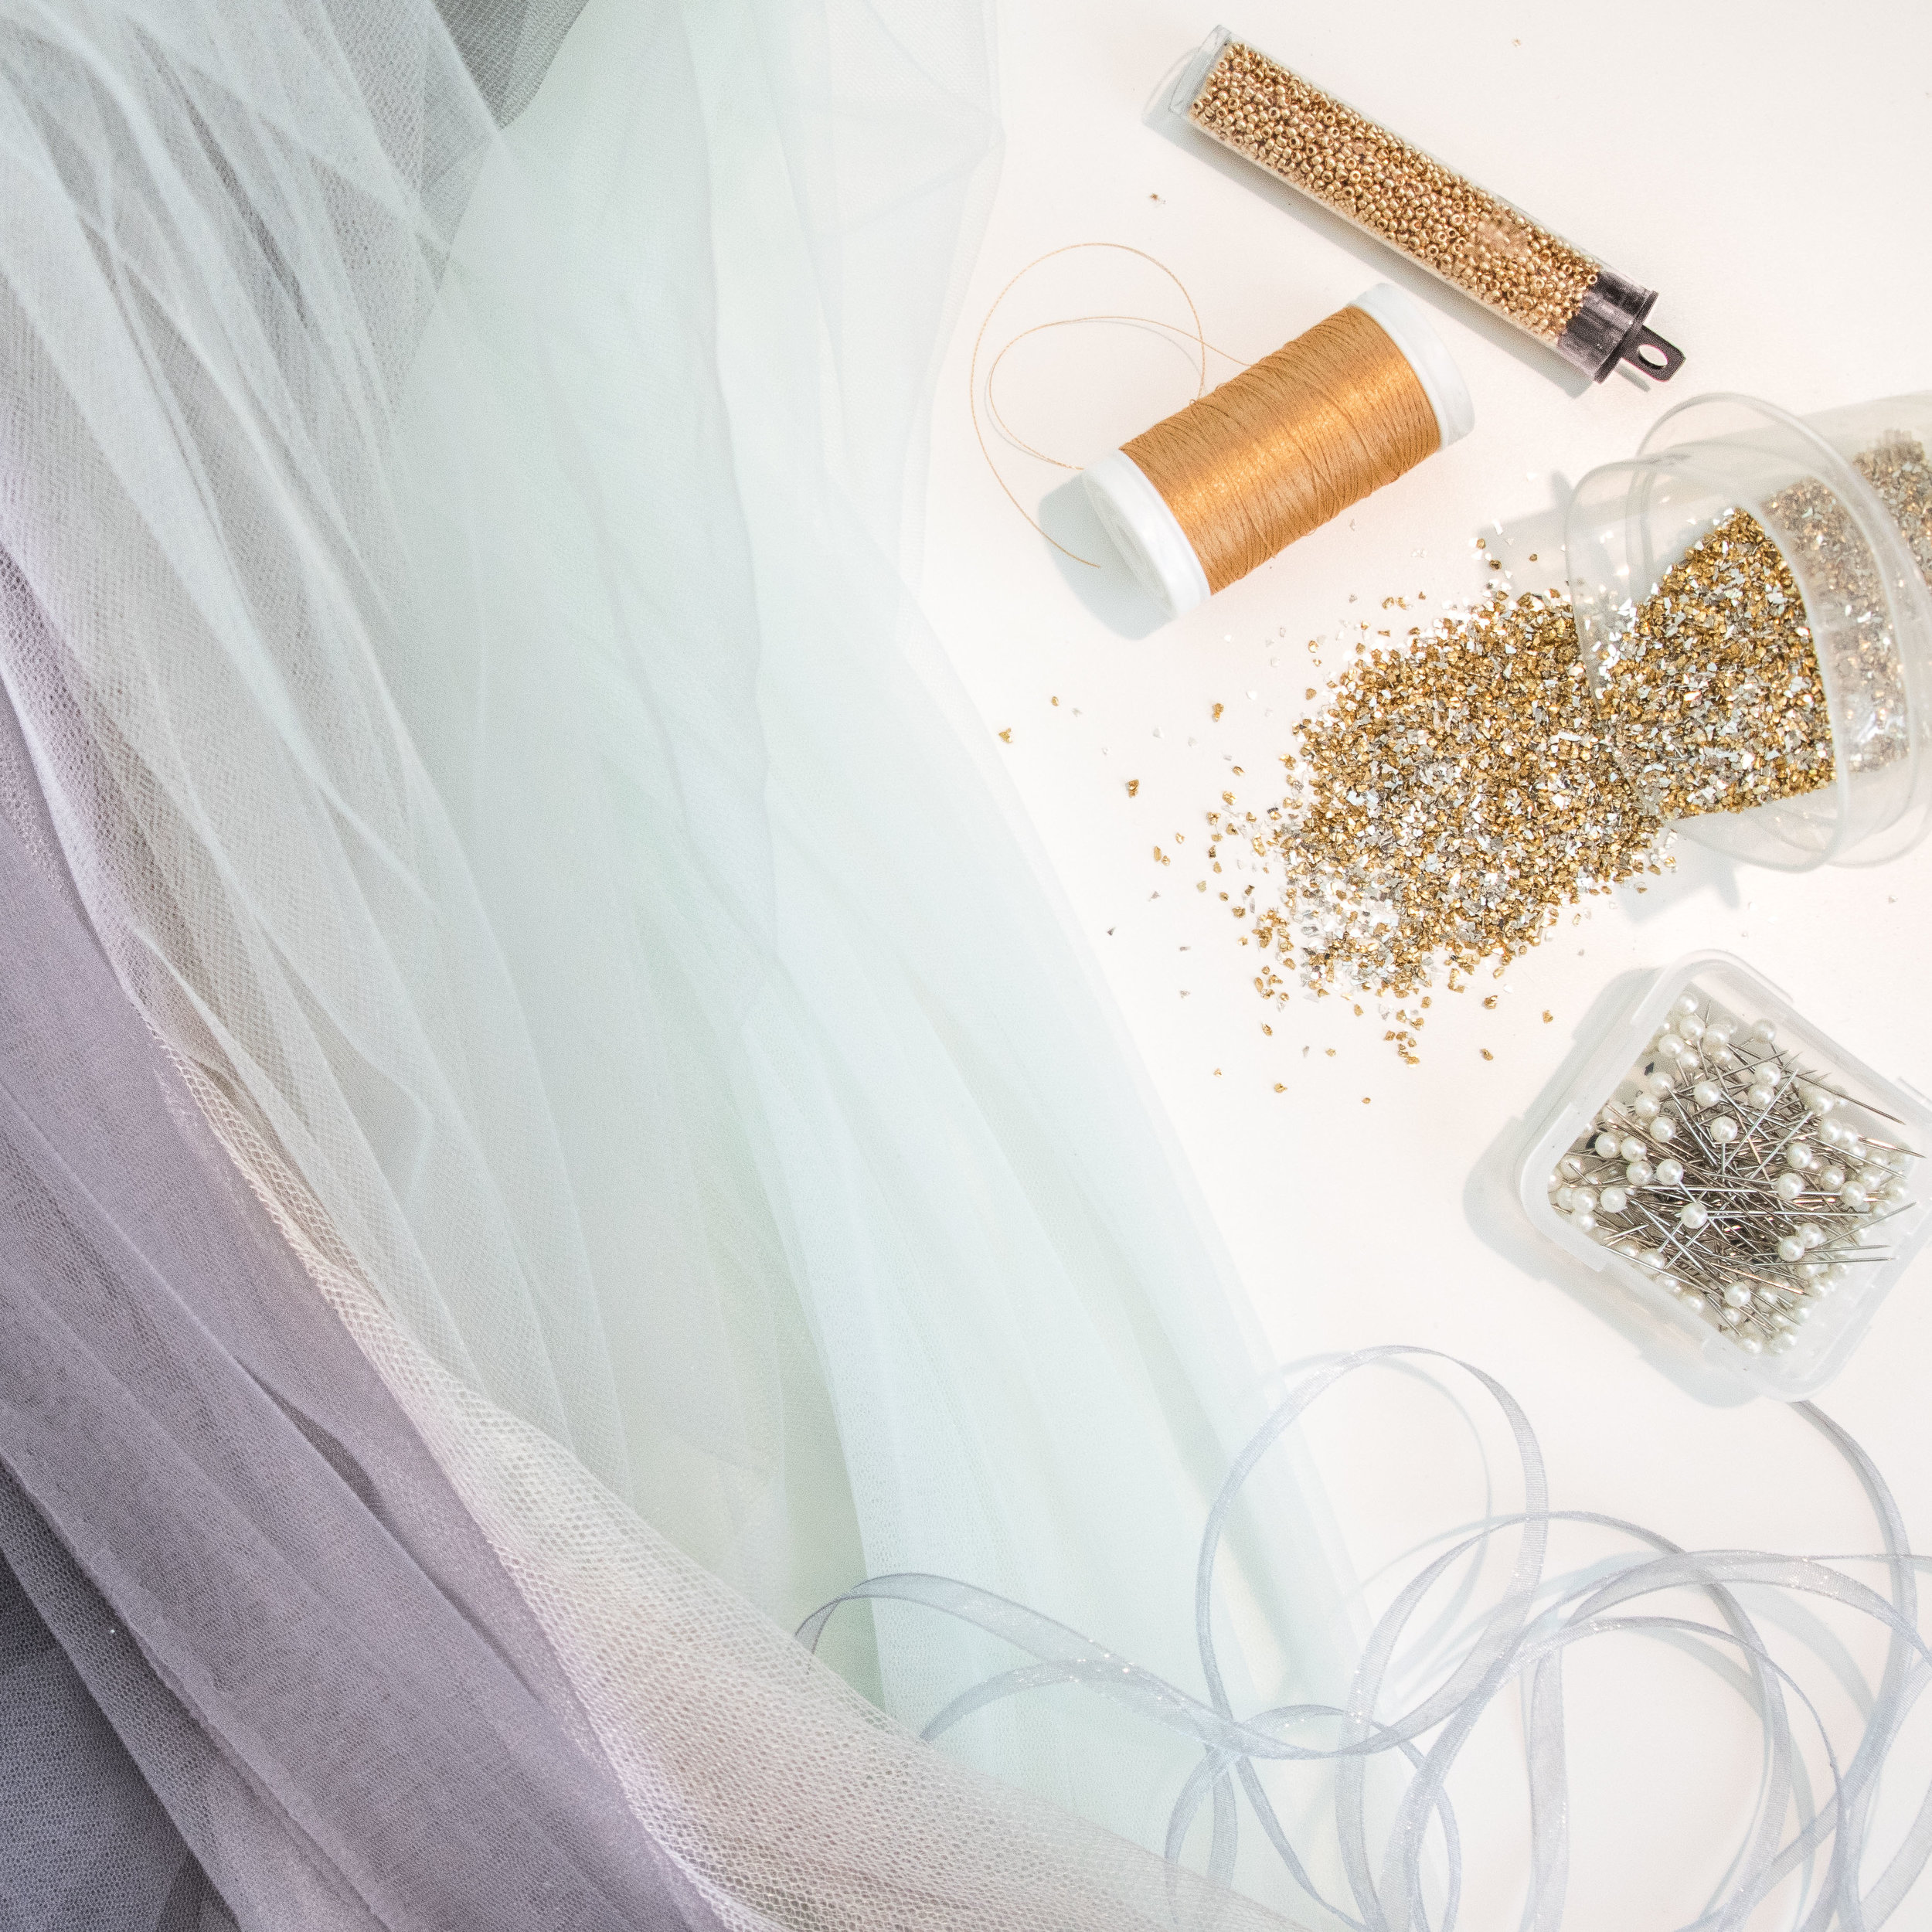 Some of the materials I used for the dress.